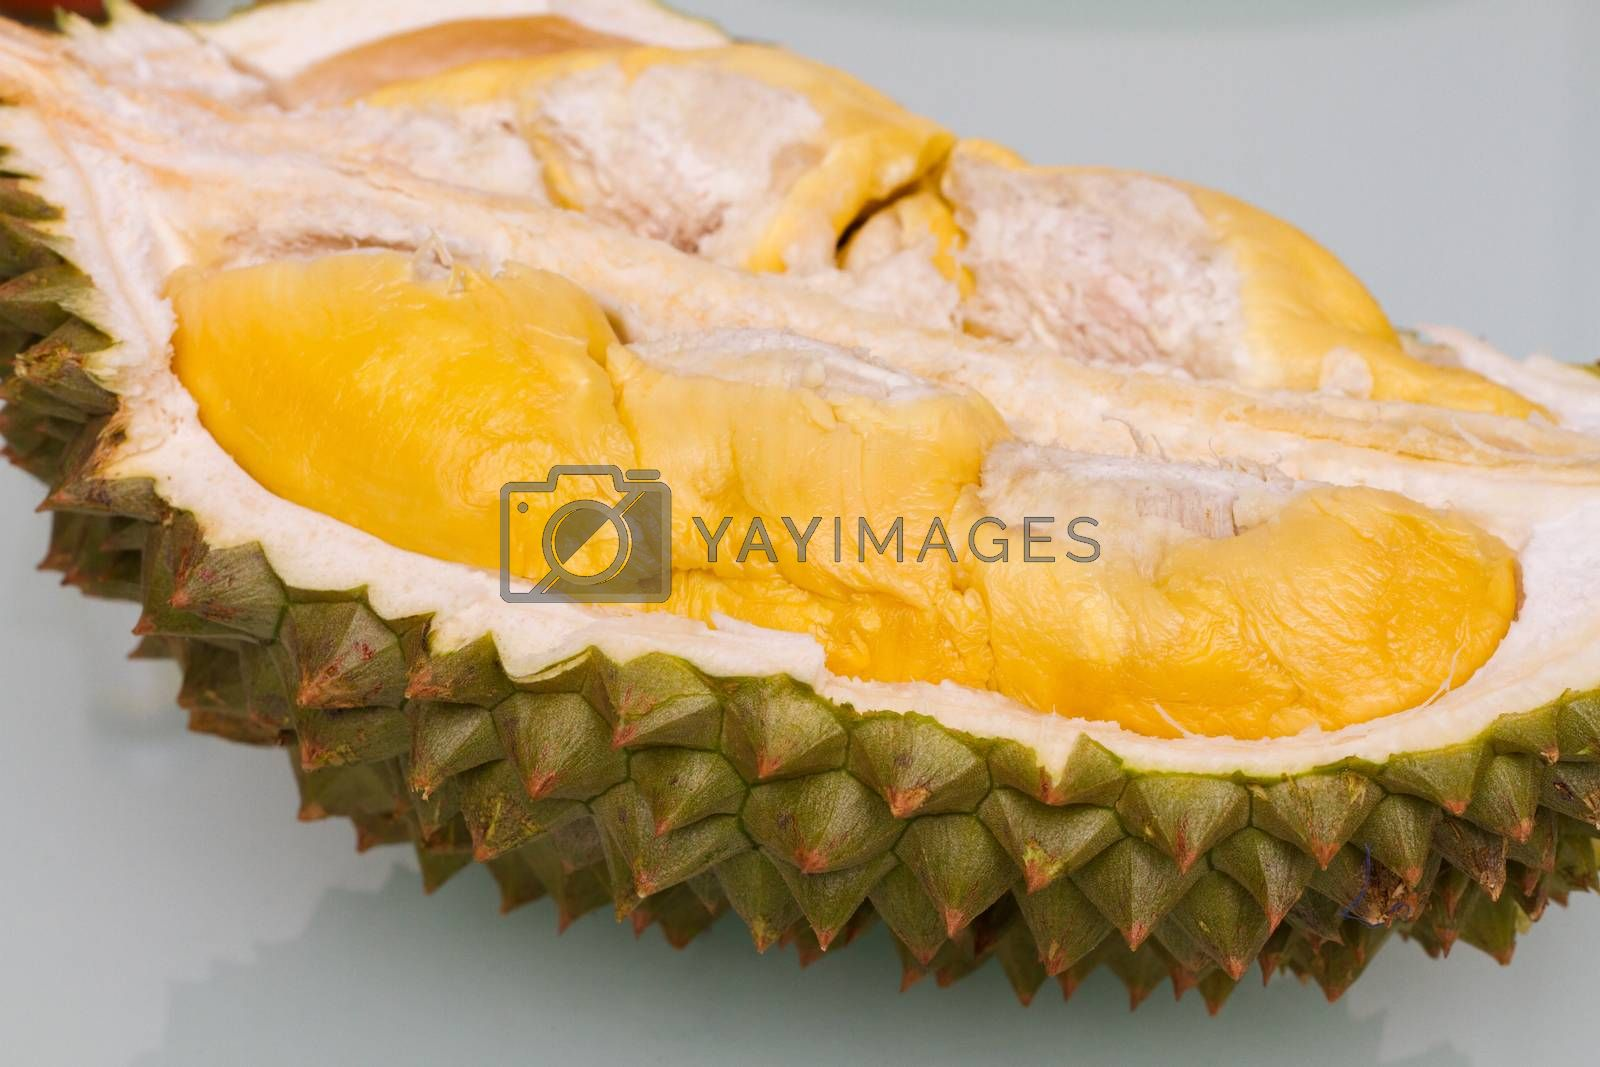 Royalty free image of Durian by kiankhoon